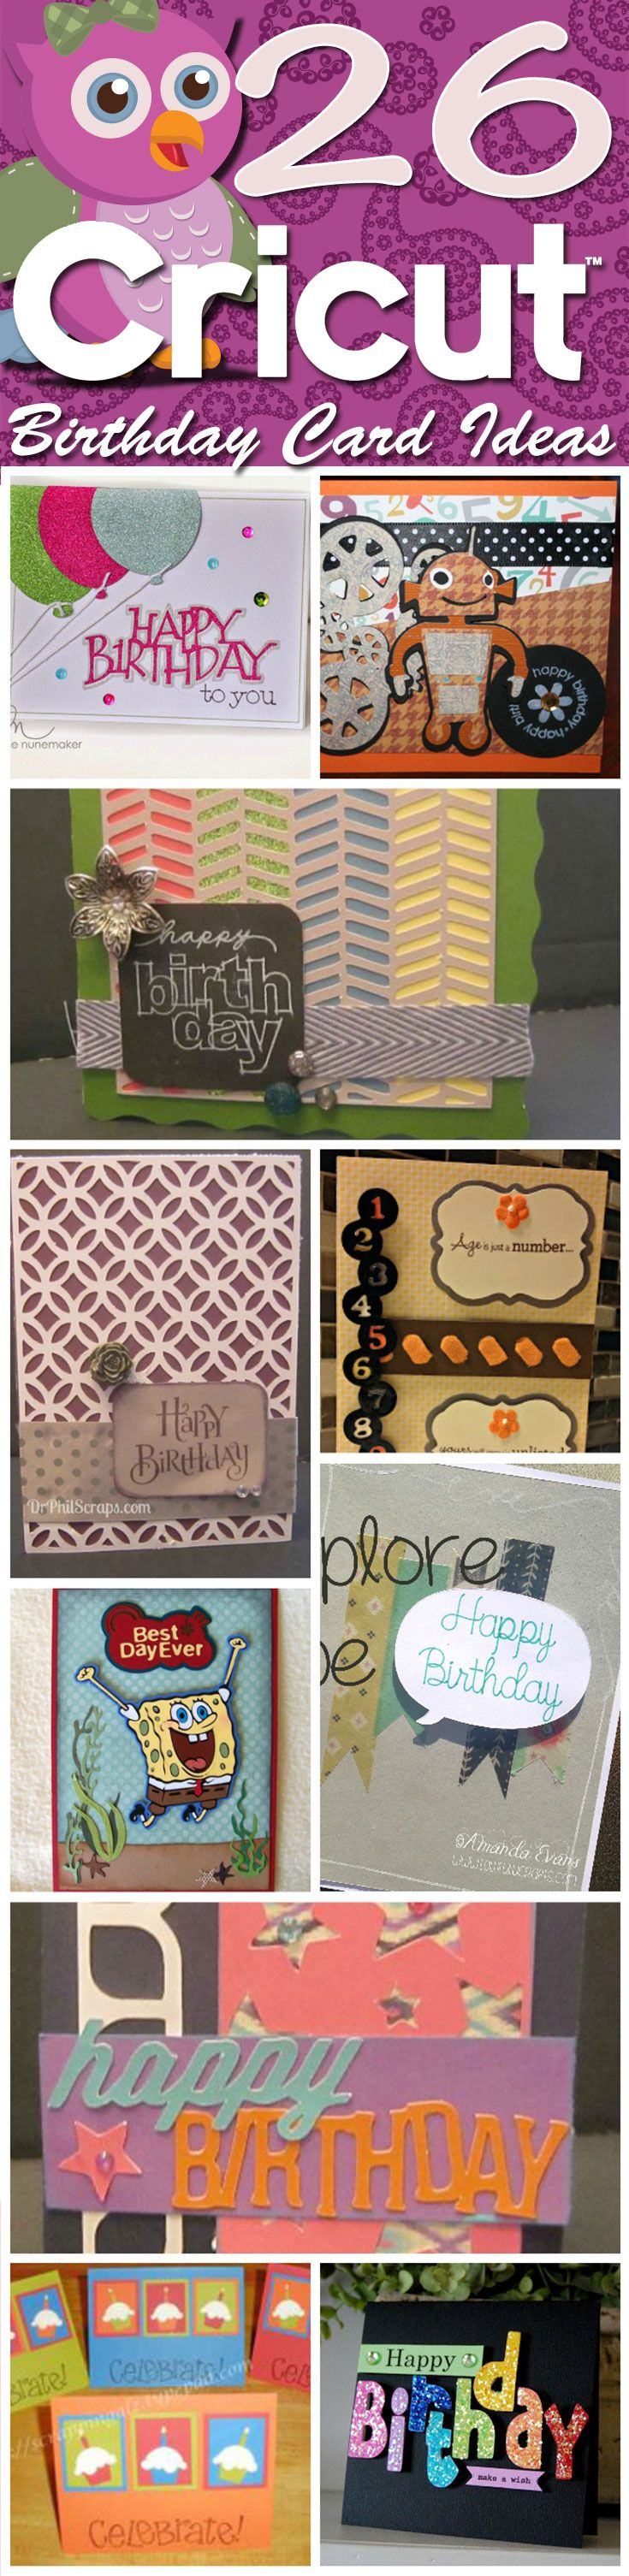 26 Cricut Birthday Card Ideas | CRICUT | Cricut birthday